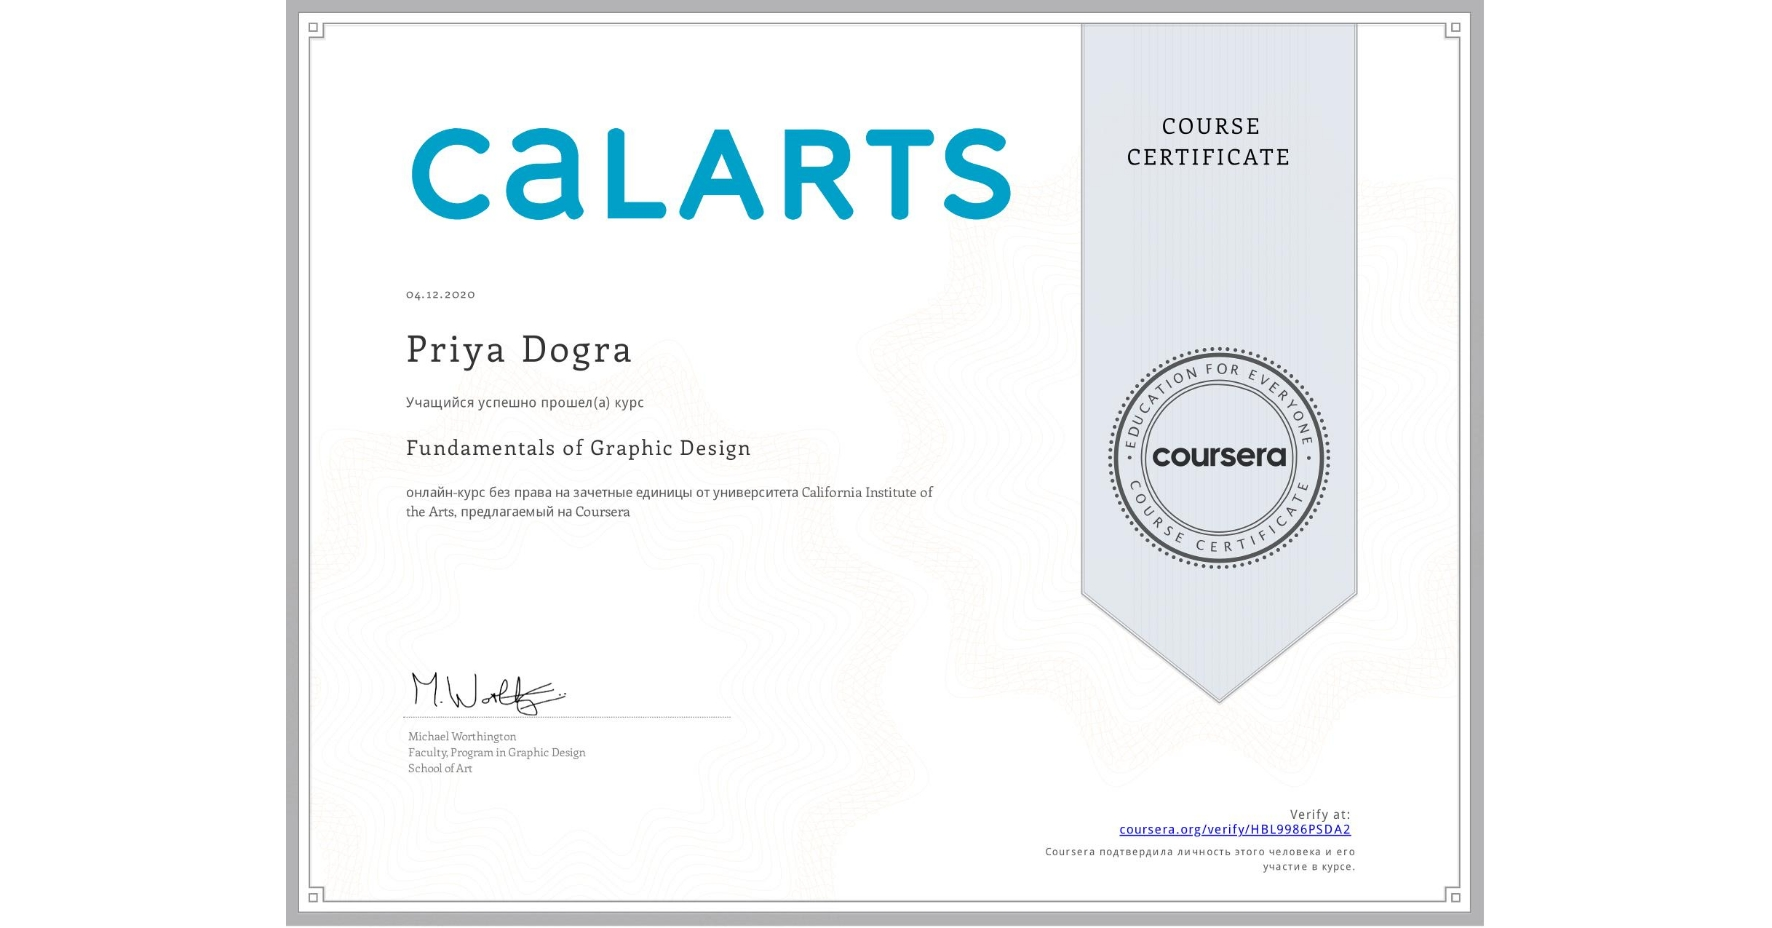 View certificate for Priya Dogra, Fundamentals of Graphic Design, an online non-credit course authorized by California Institute of the Arts and offered through Coursera